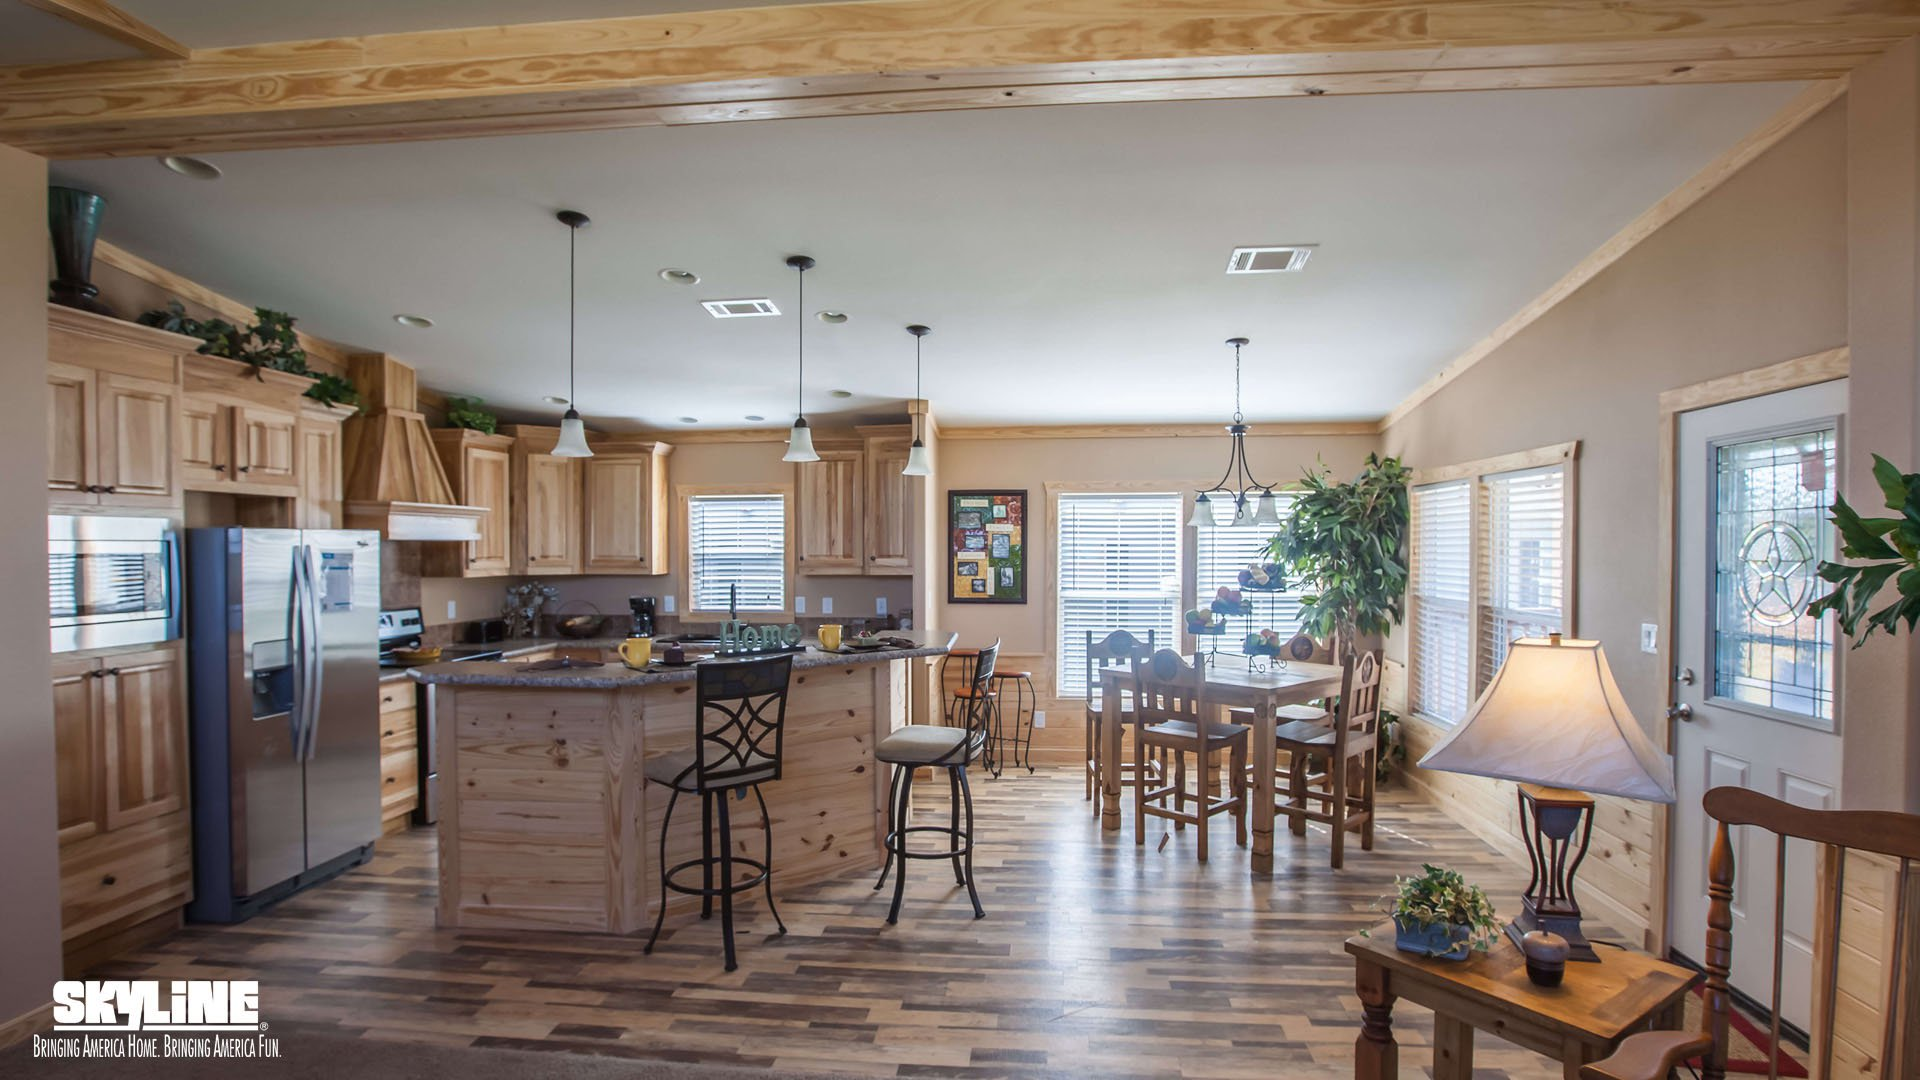 Sky ranch e222 kerr by skyline homes for Ranch floor plans with large kitchen